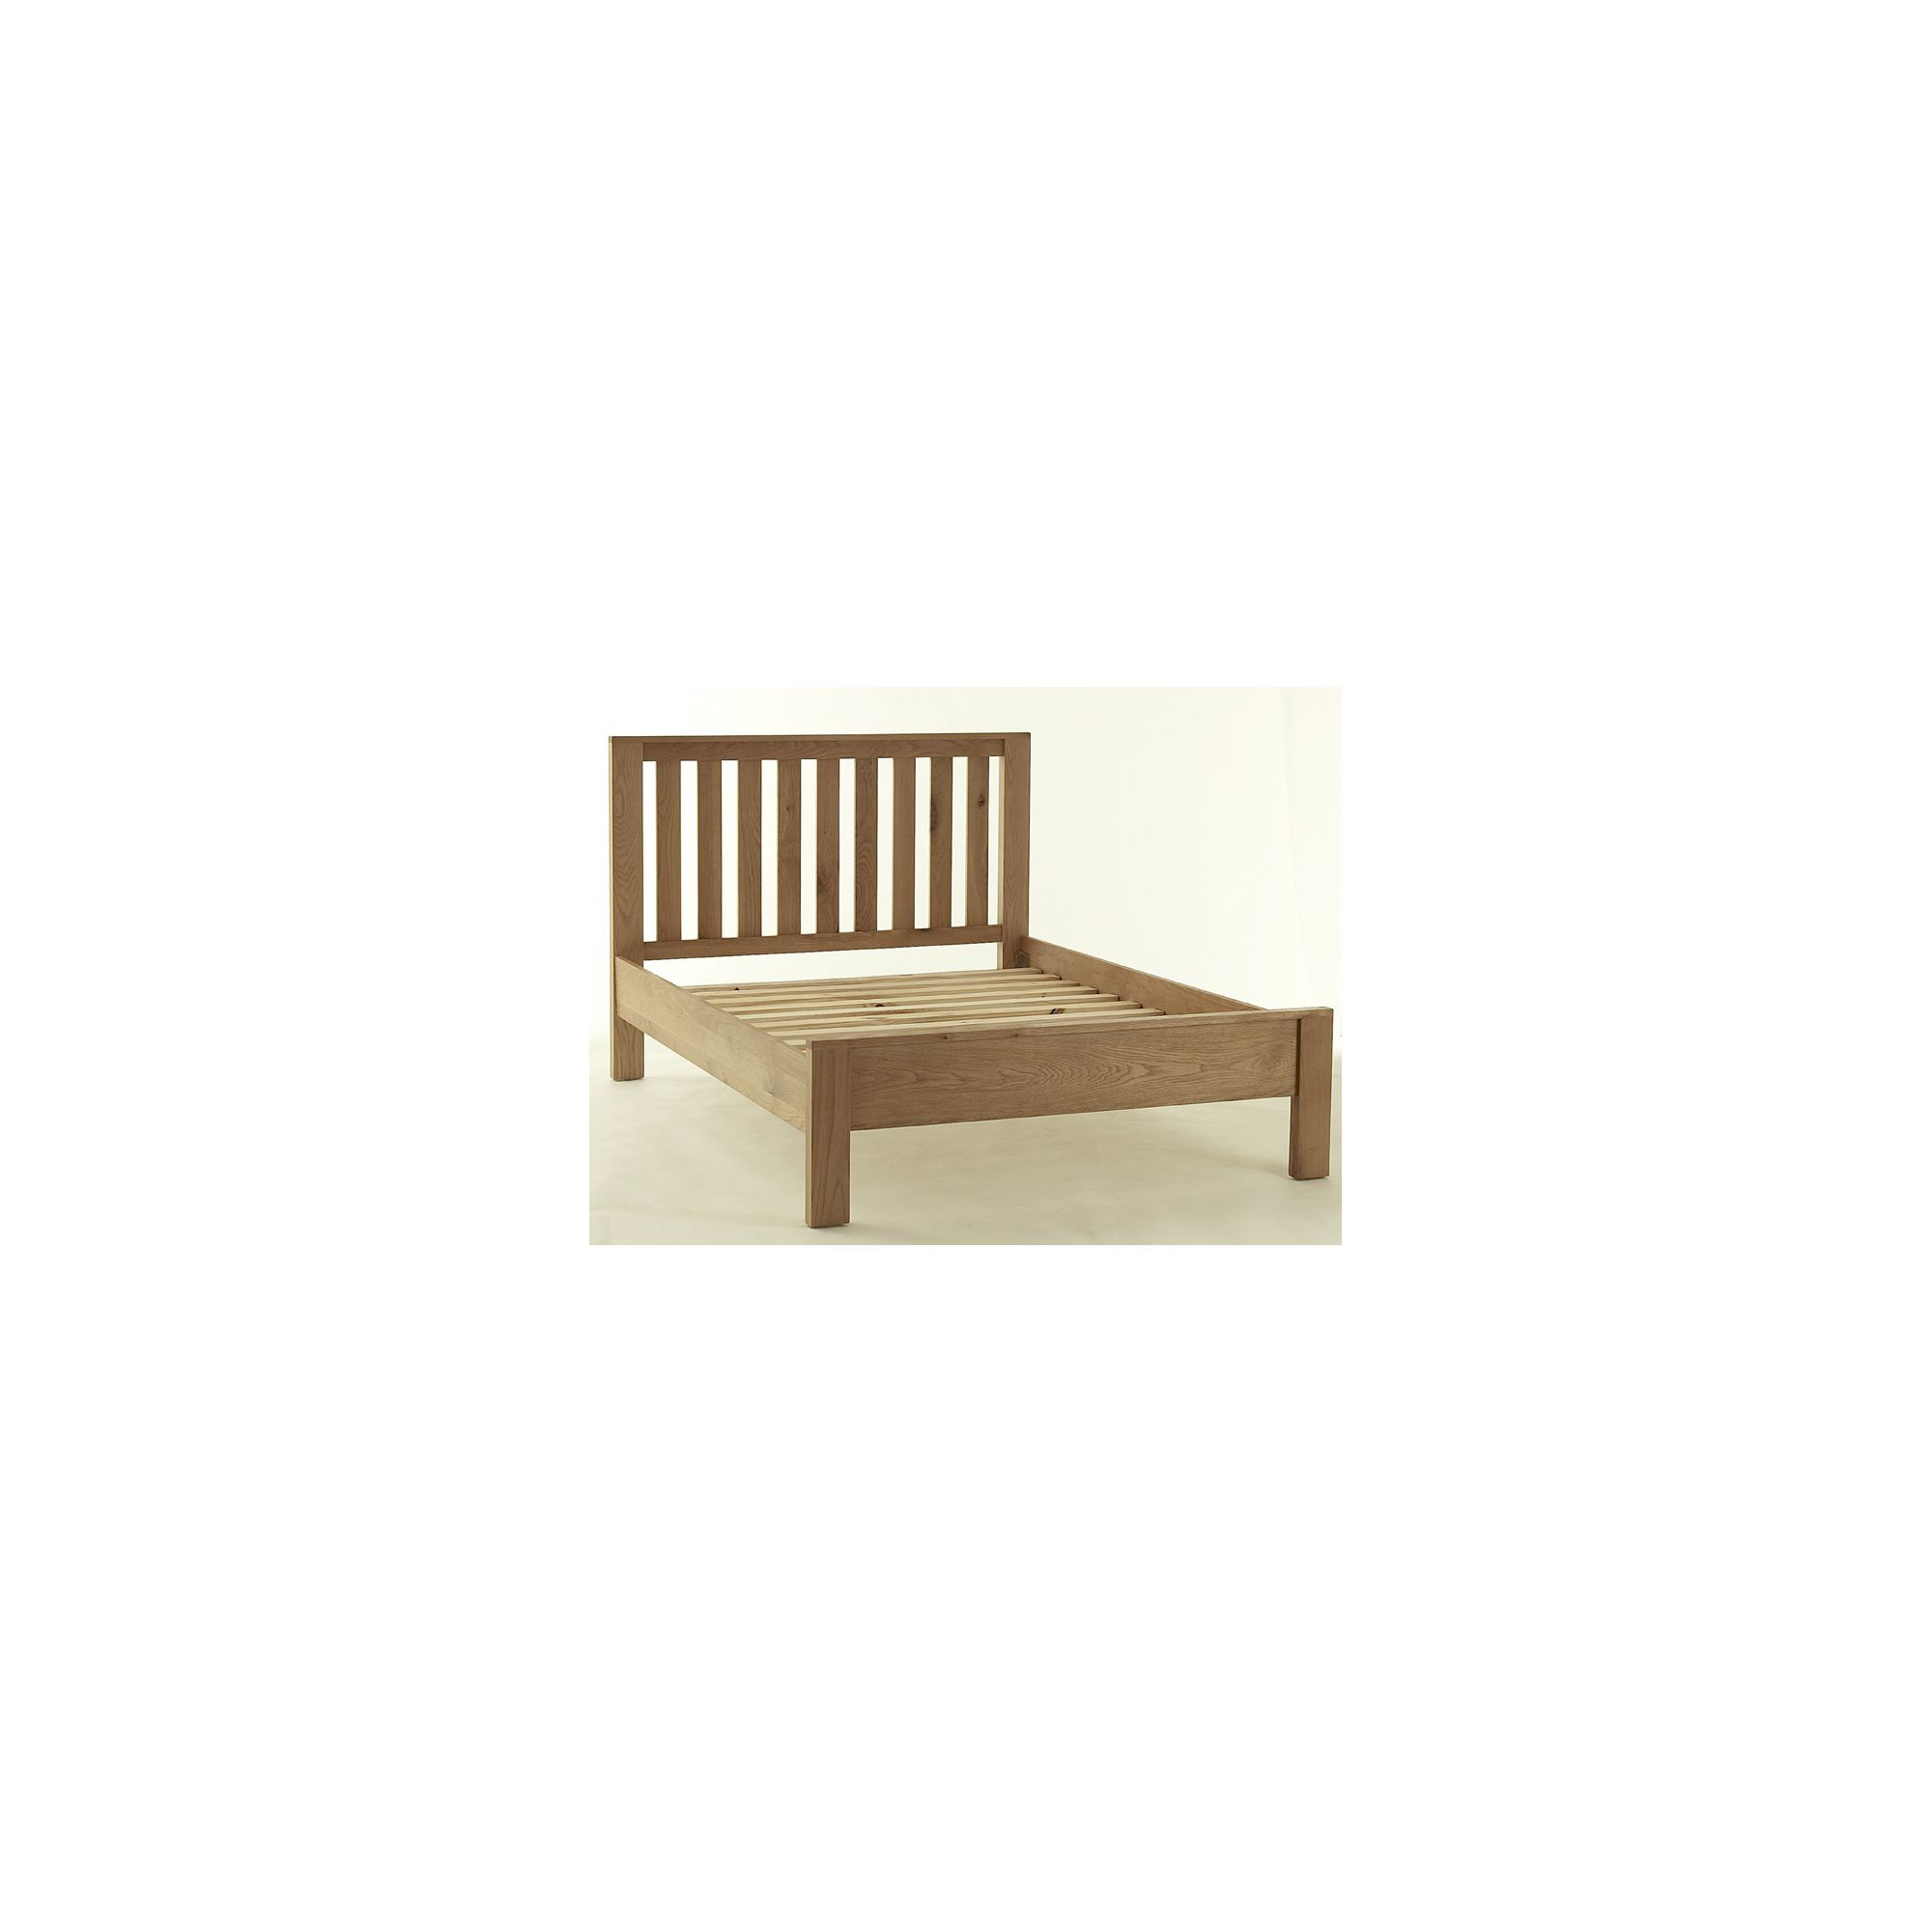 Thorndon Block Bed Frame - Double at Tesco Direct